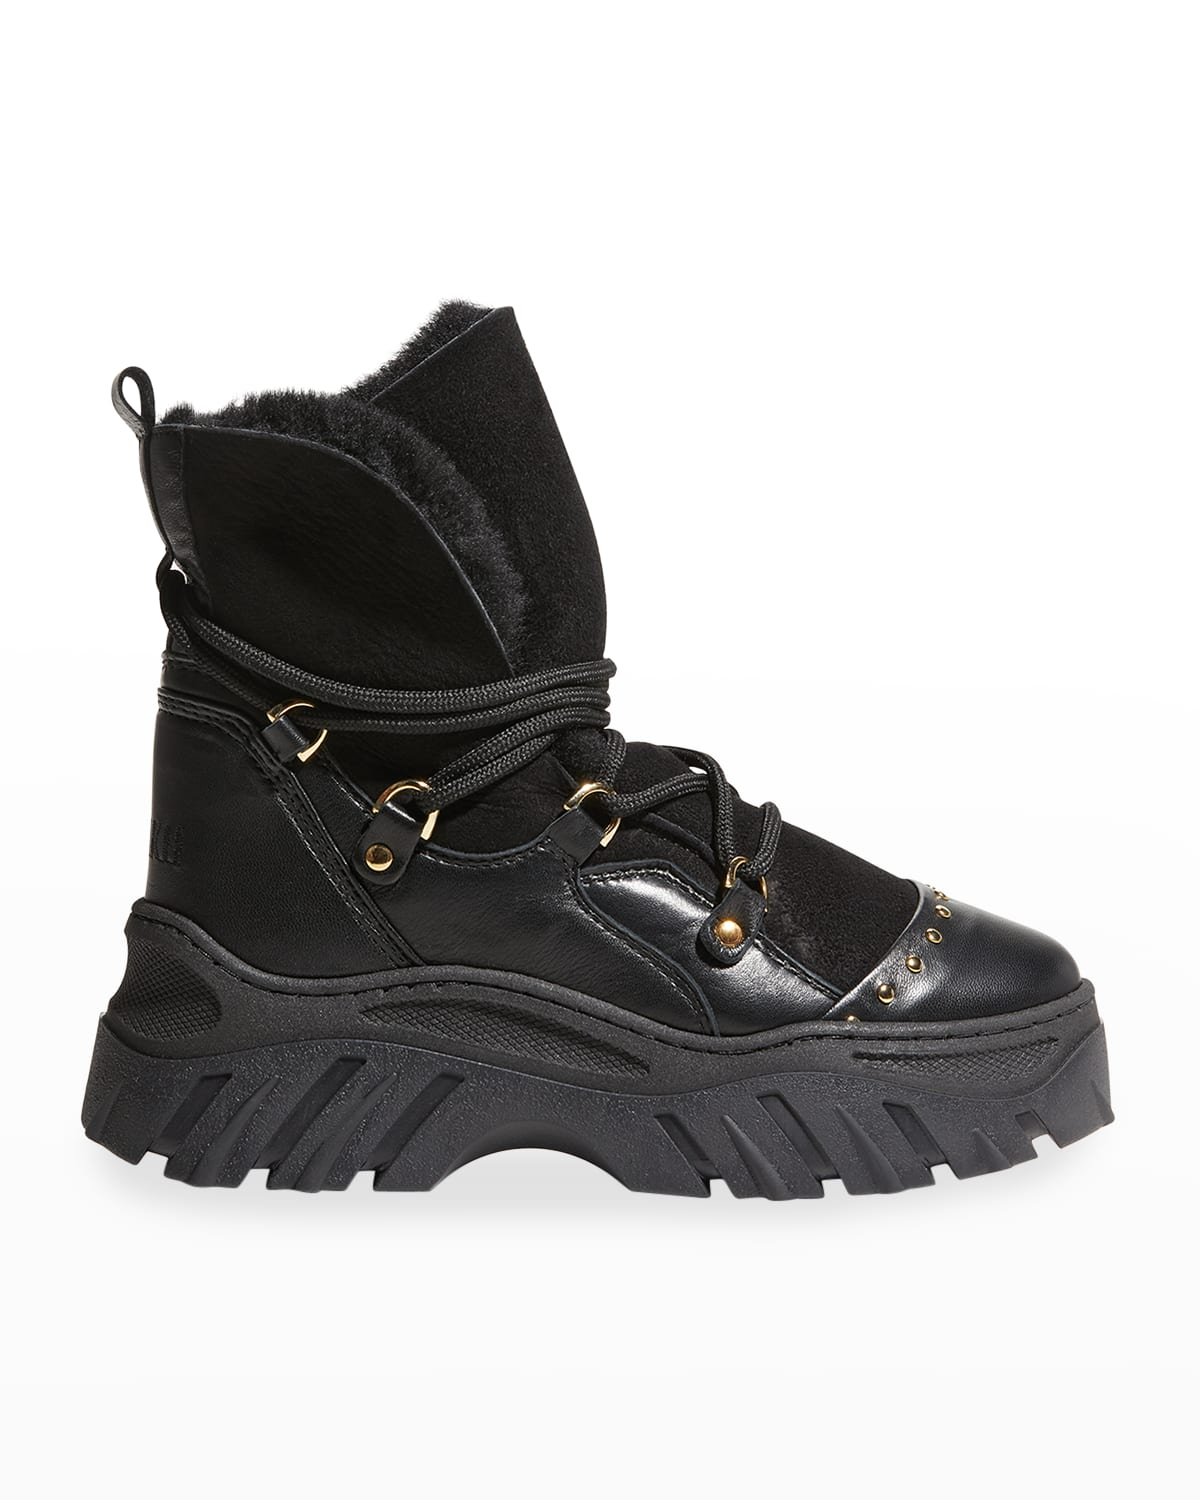 Trekking Mixed Leather Lace-Up Snow Booties